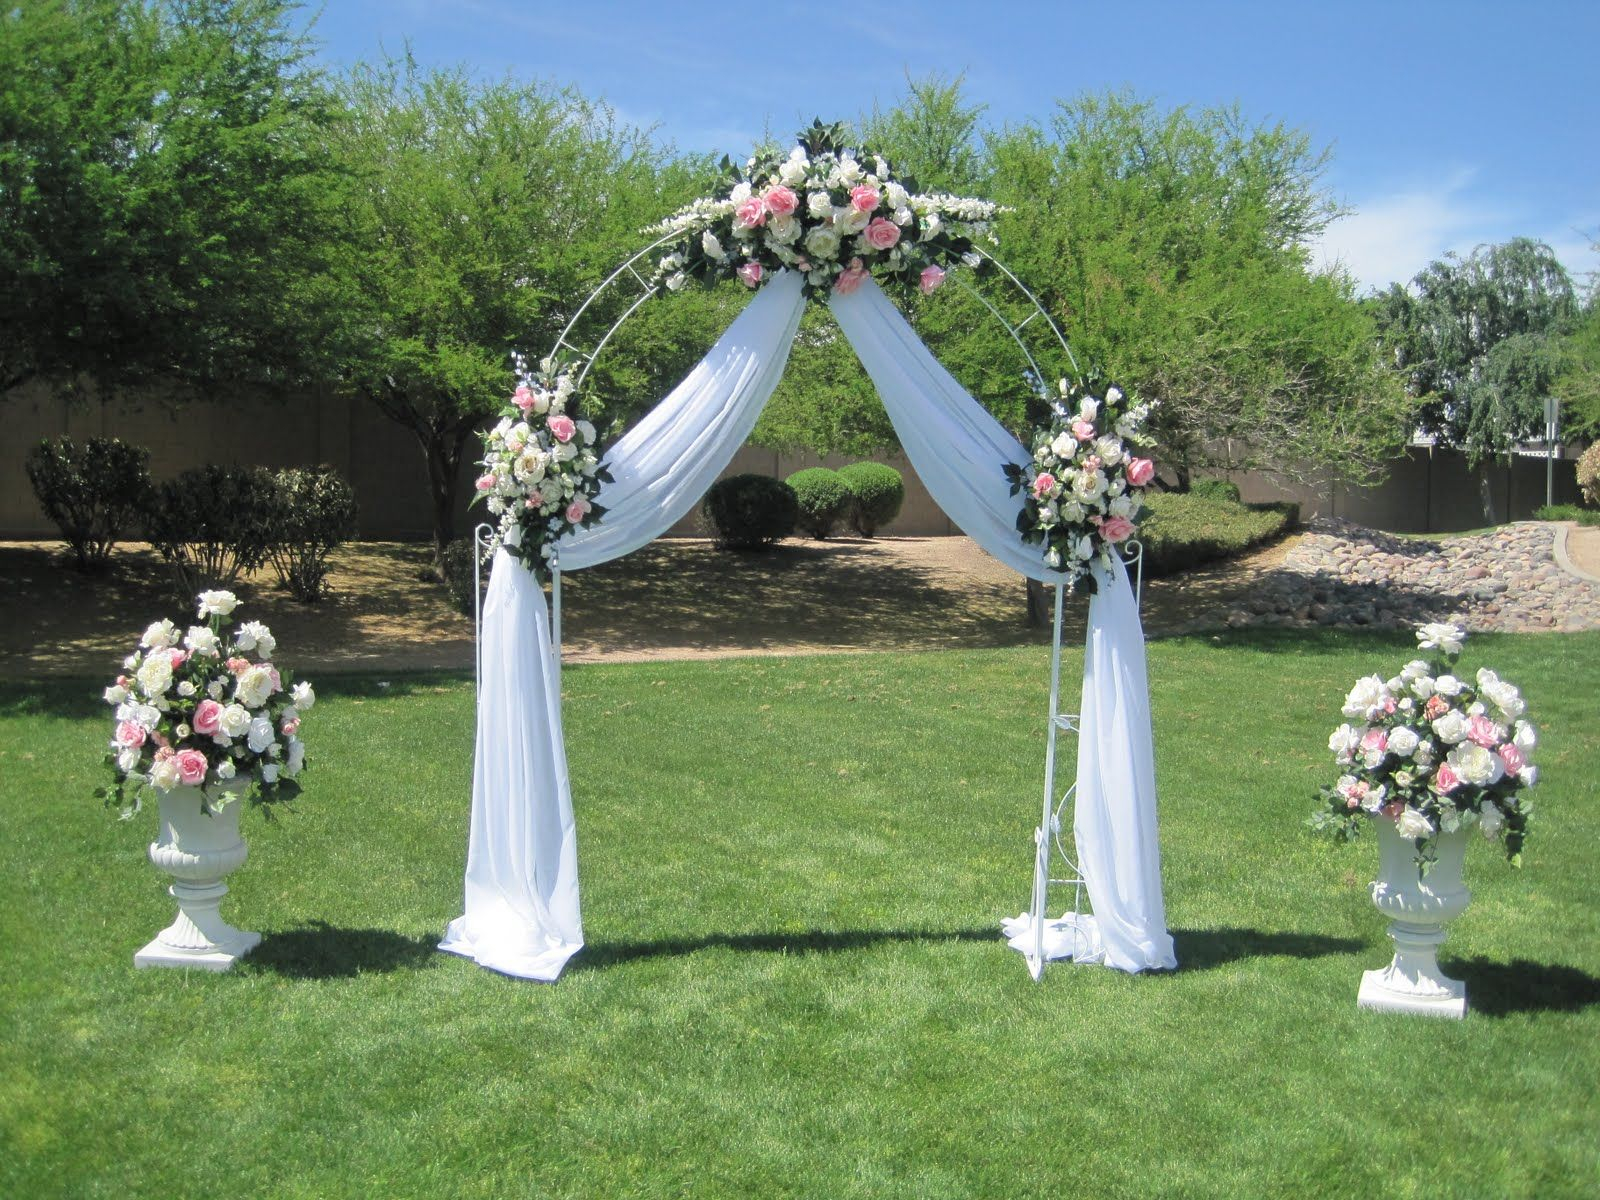 Wedding gazebo decorating ideas white wrought iron arch for Archway decoration ideas